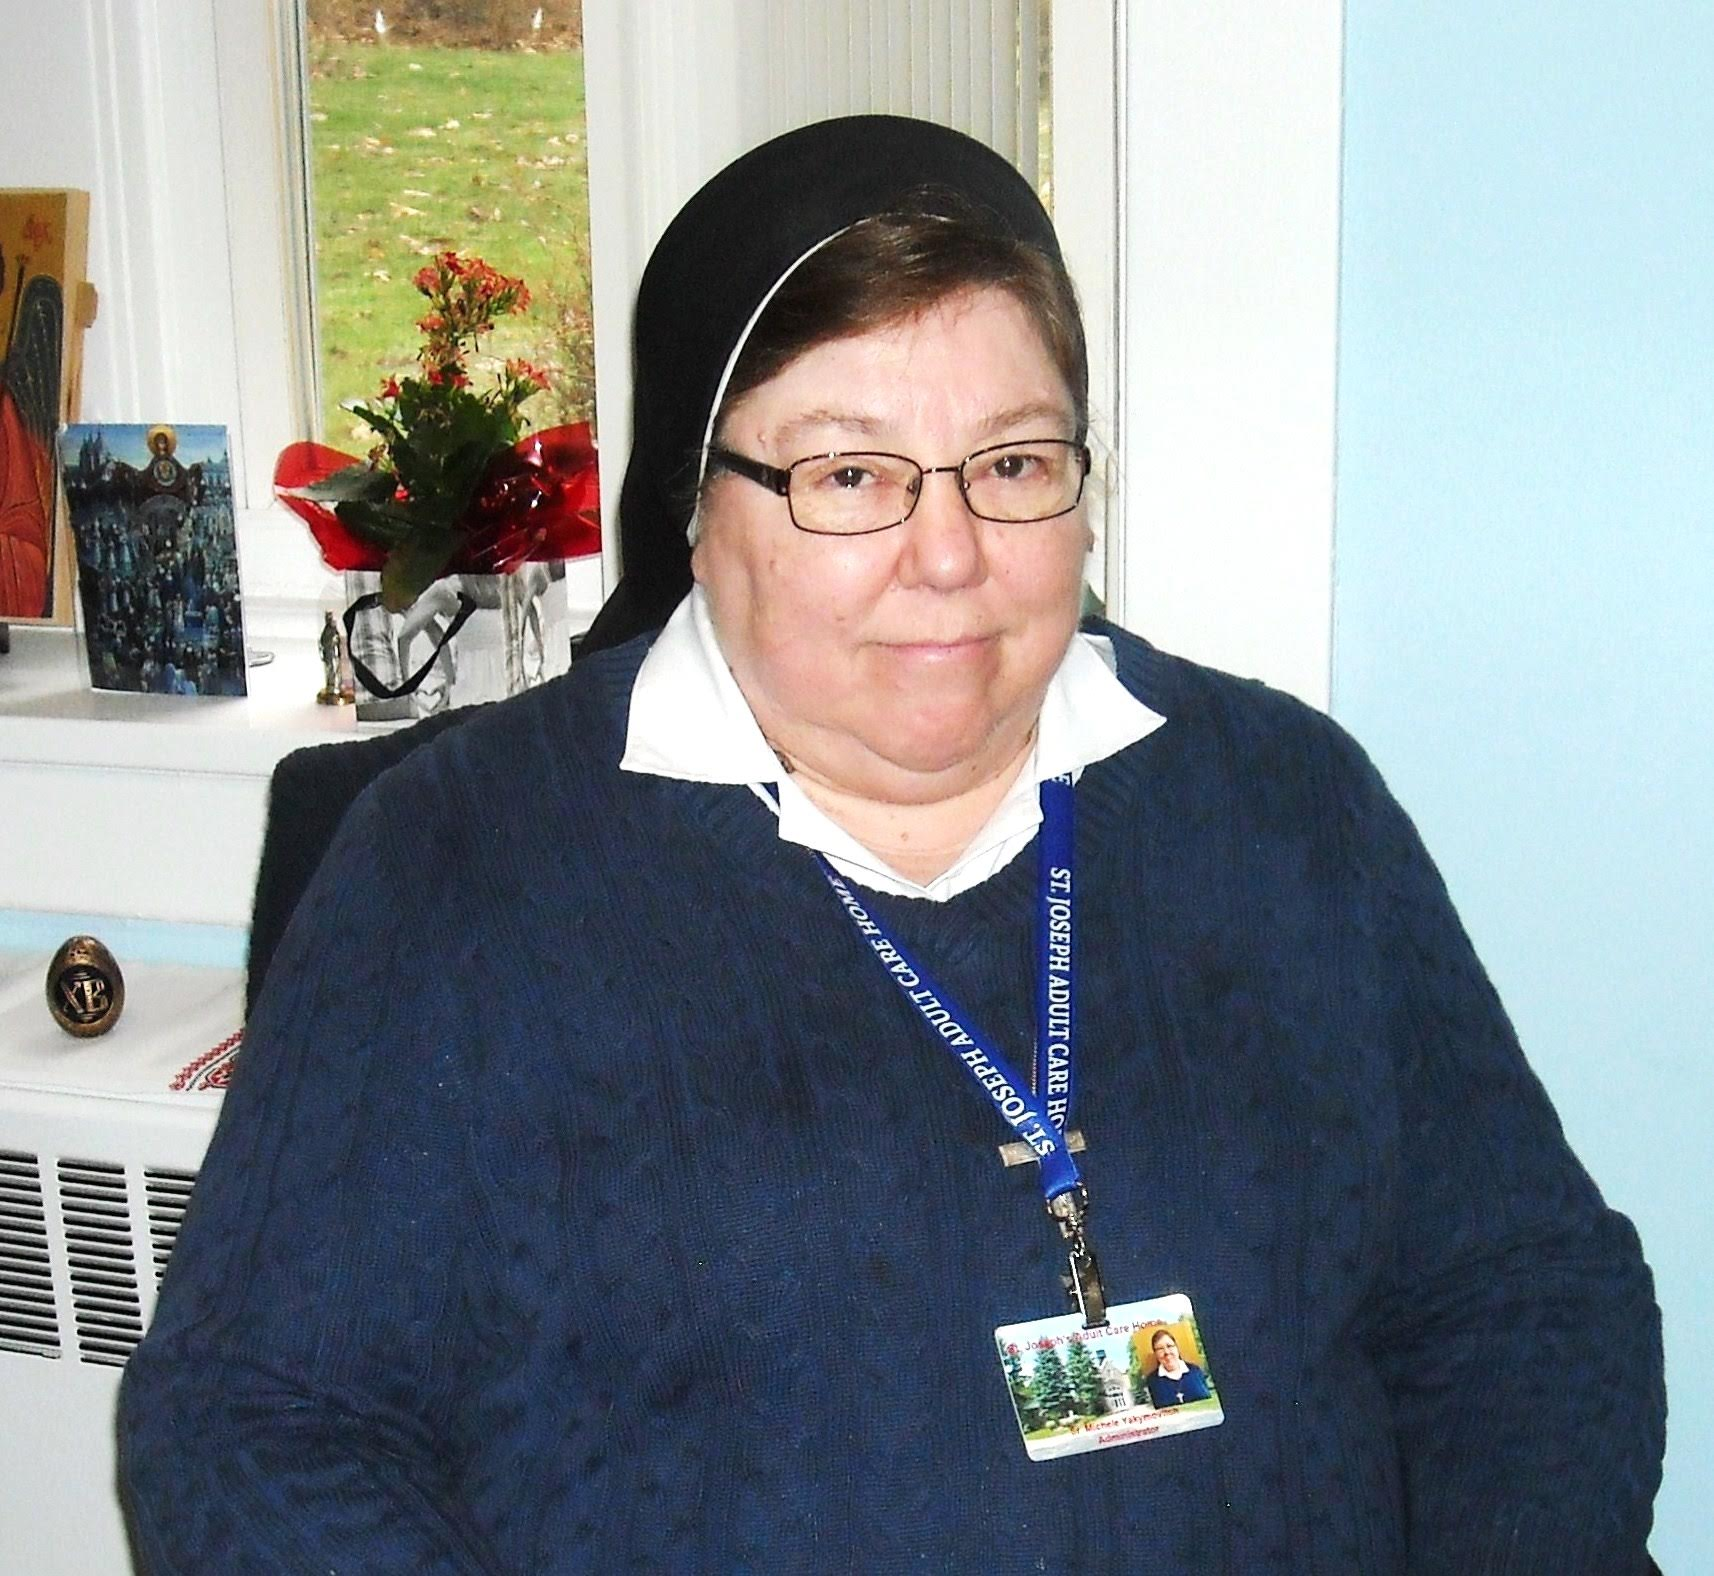 Miracle Needed- St. Joseph's Adult Care Home's Building Expansion Project in Sloatsburg is in Jeopardy!